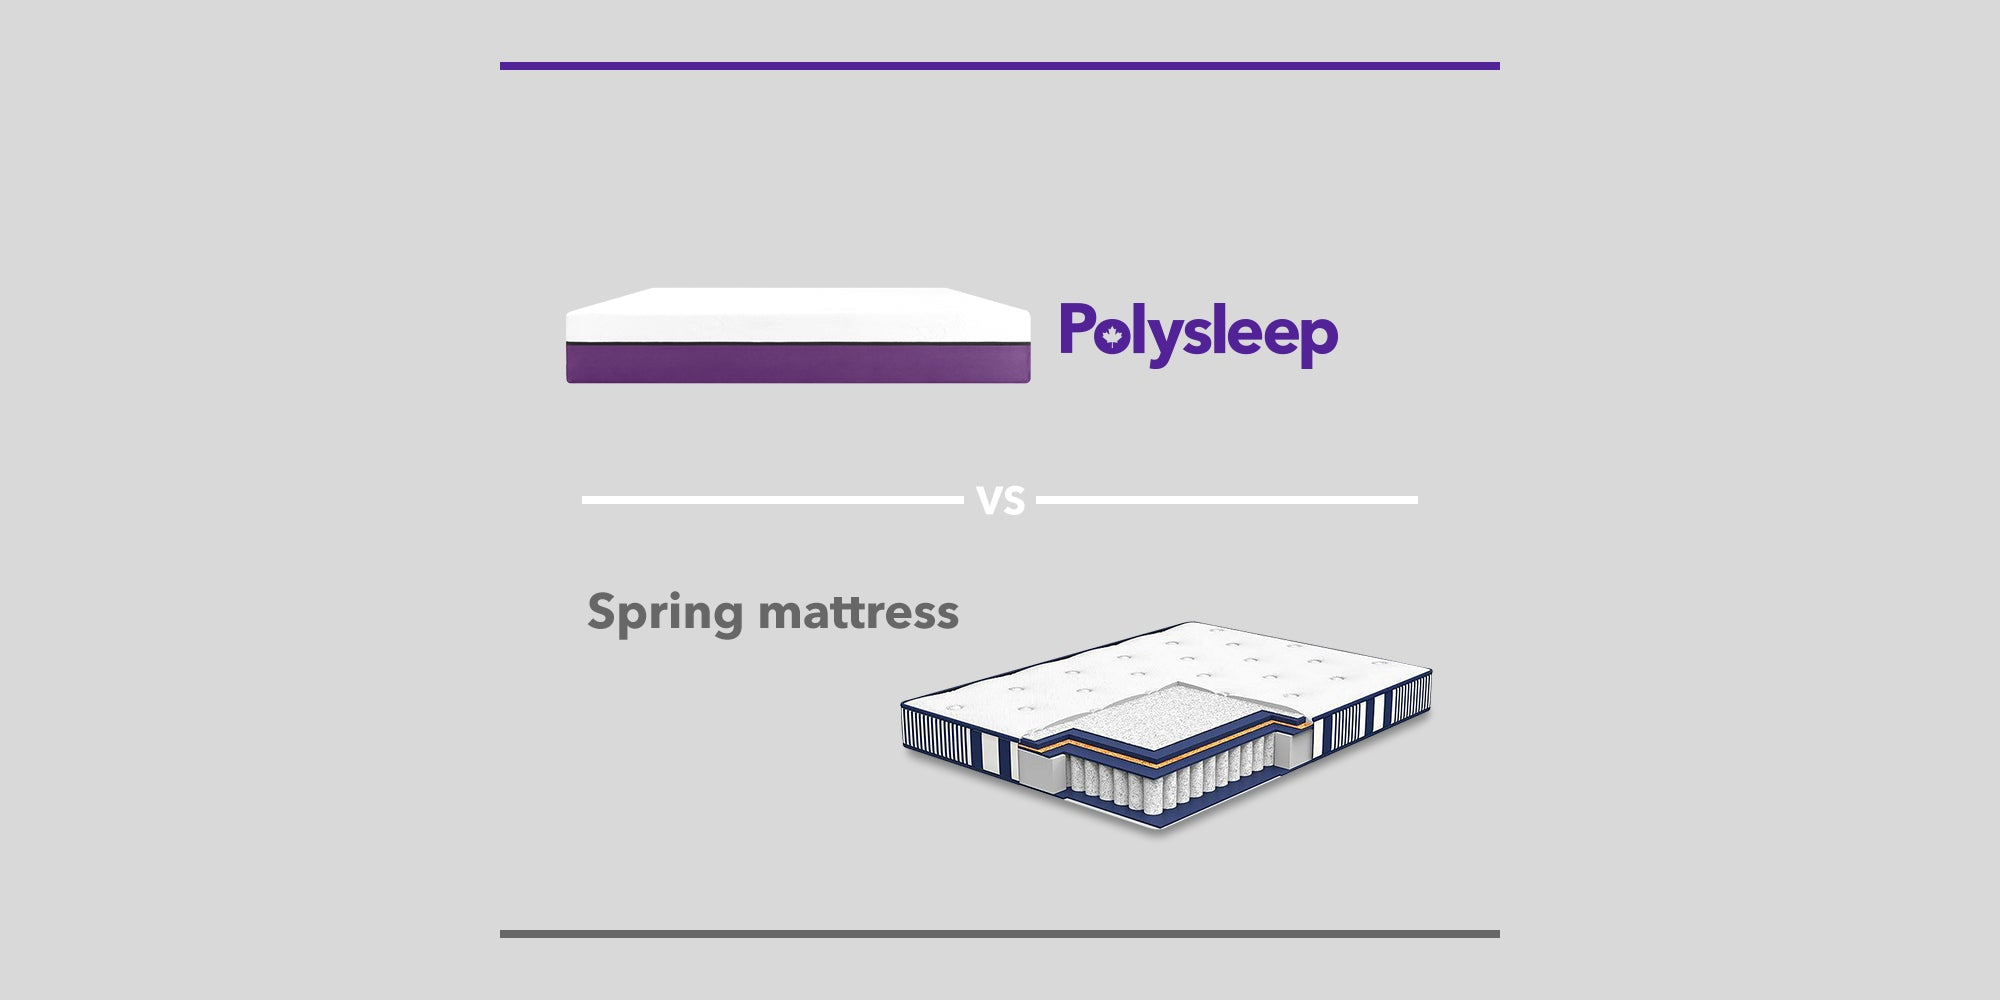 Illustration of a spring mattress and a Polysleep mattress